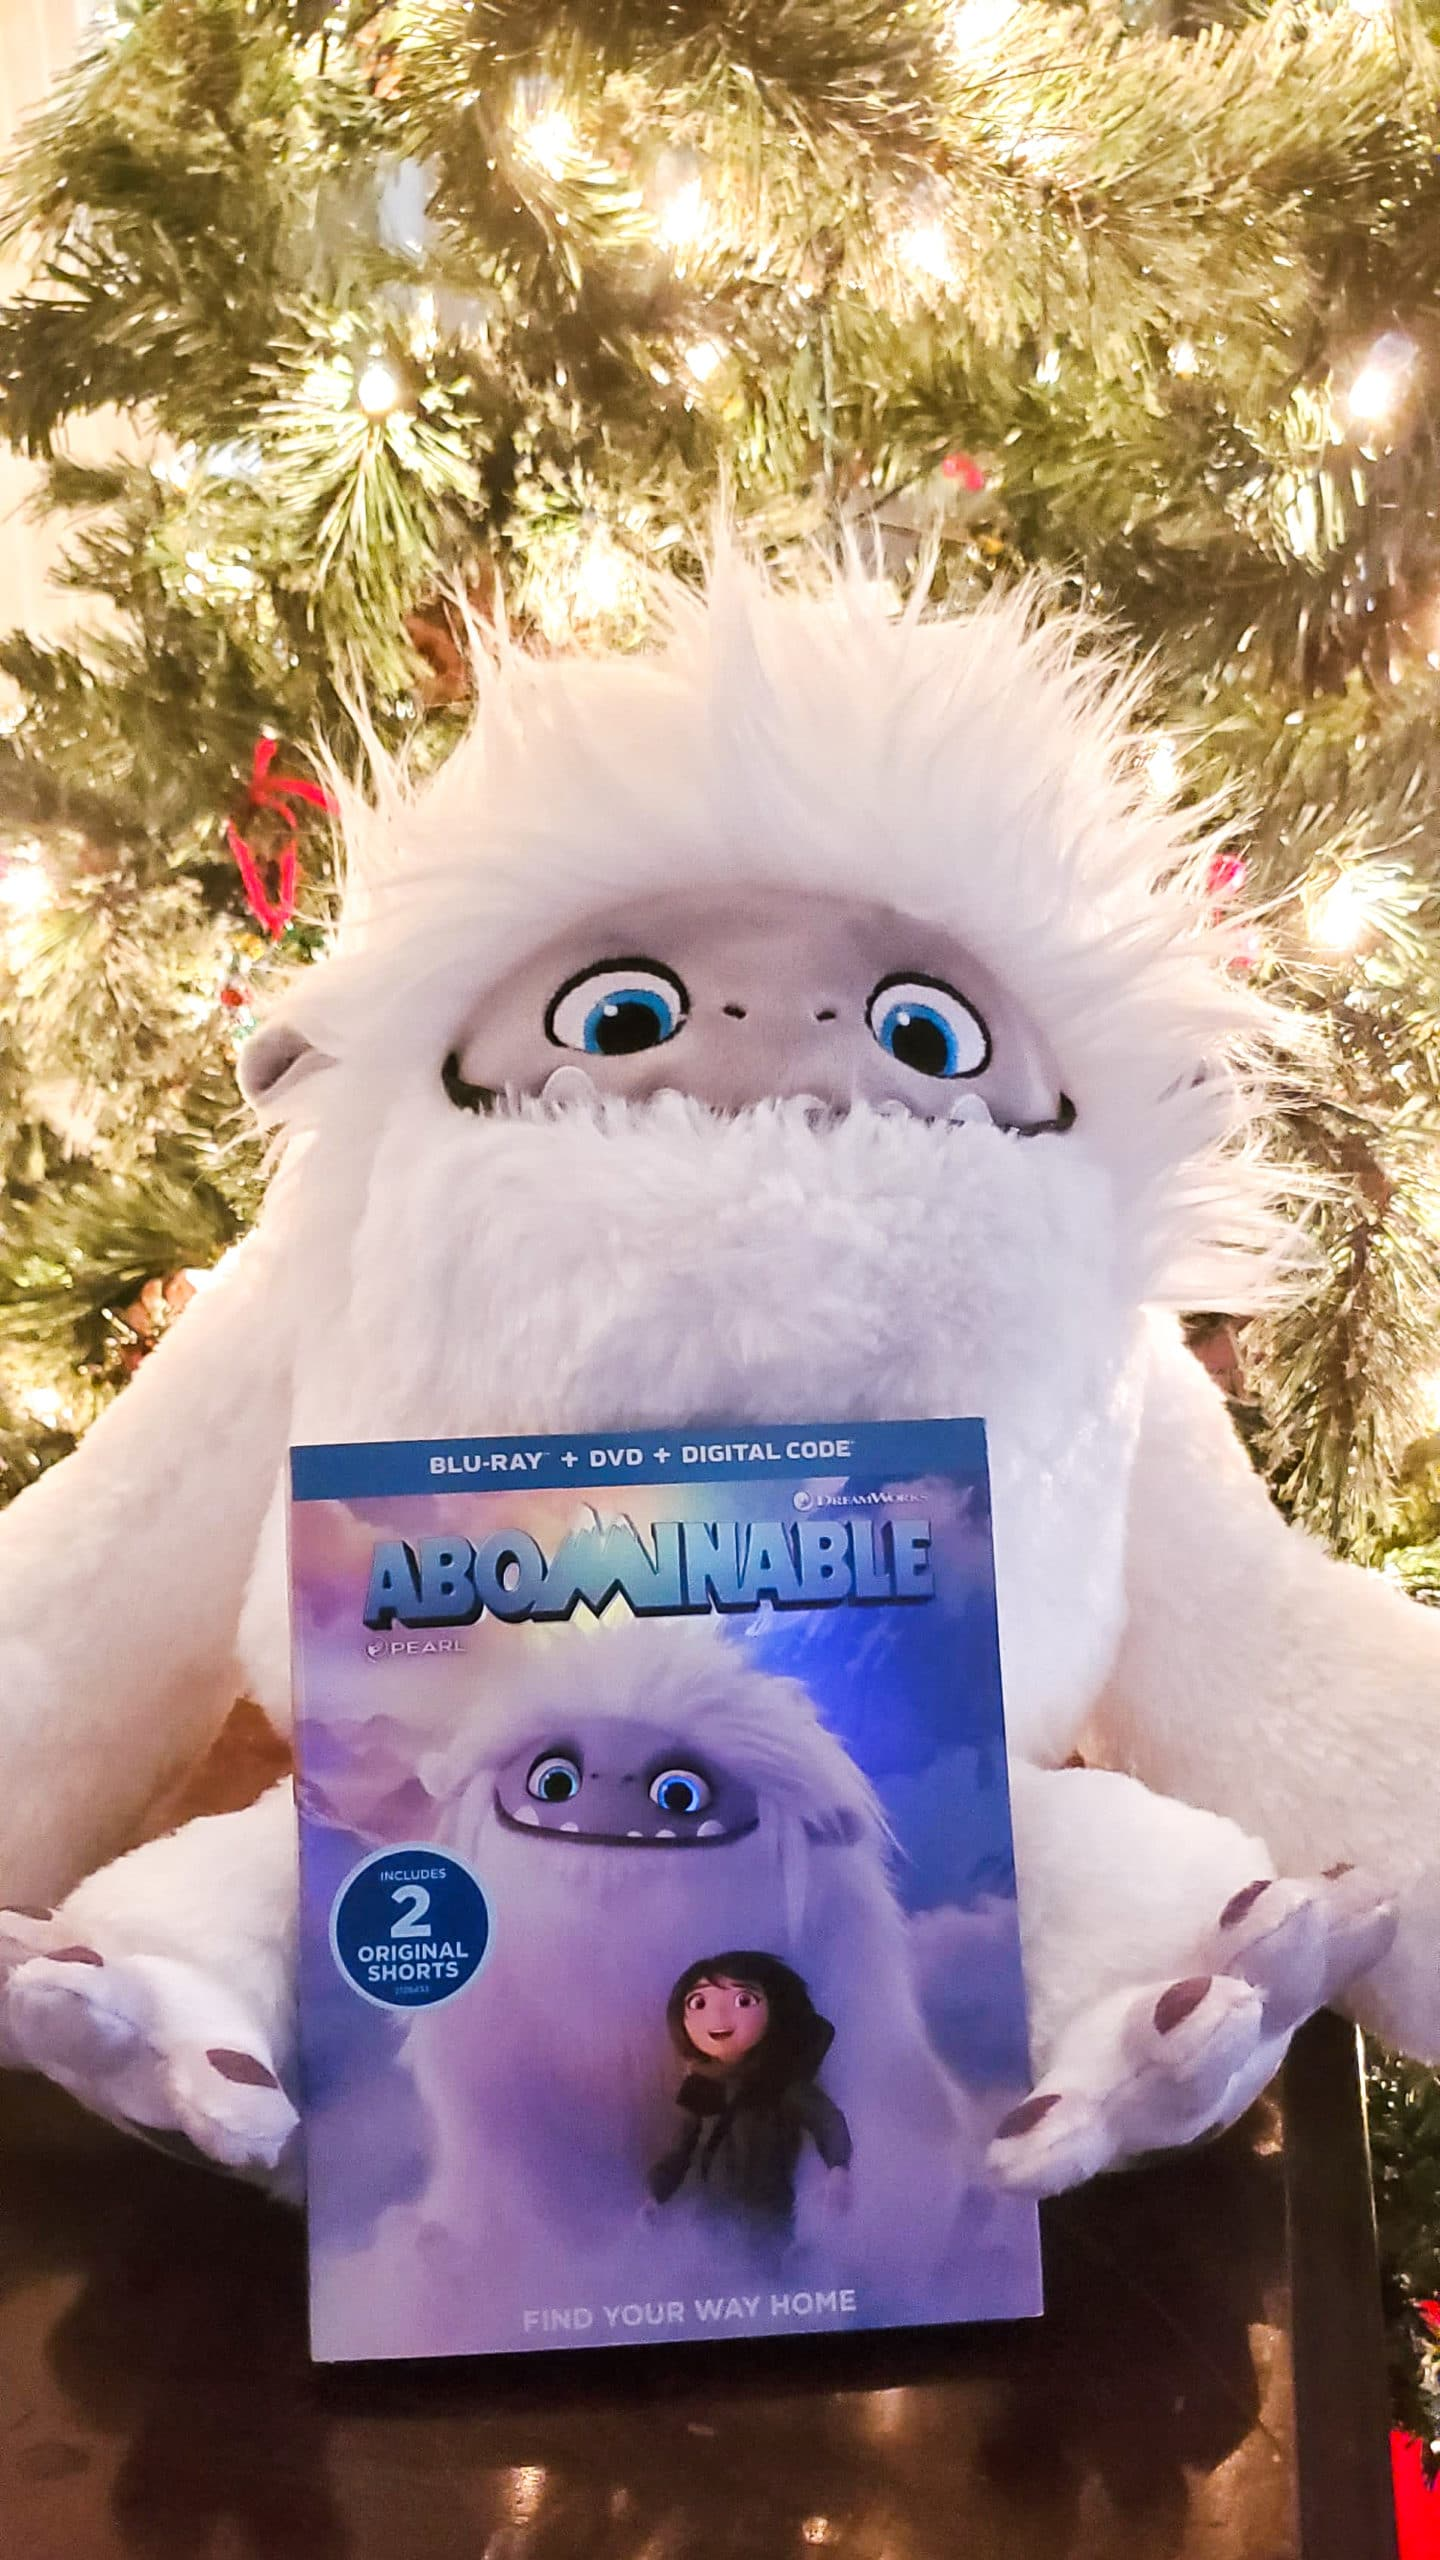 Abominable Plush Toy Blu-ray. In honor of the new film Abominable, I have teamed up with Dreamworks to host this special Dreamworks Abominable Prize Pack Giveaway